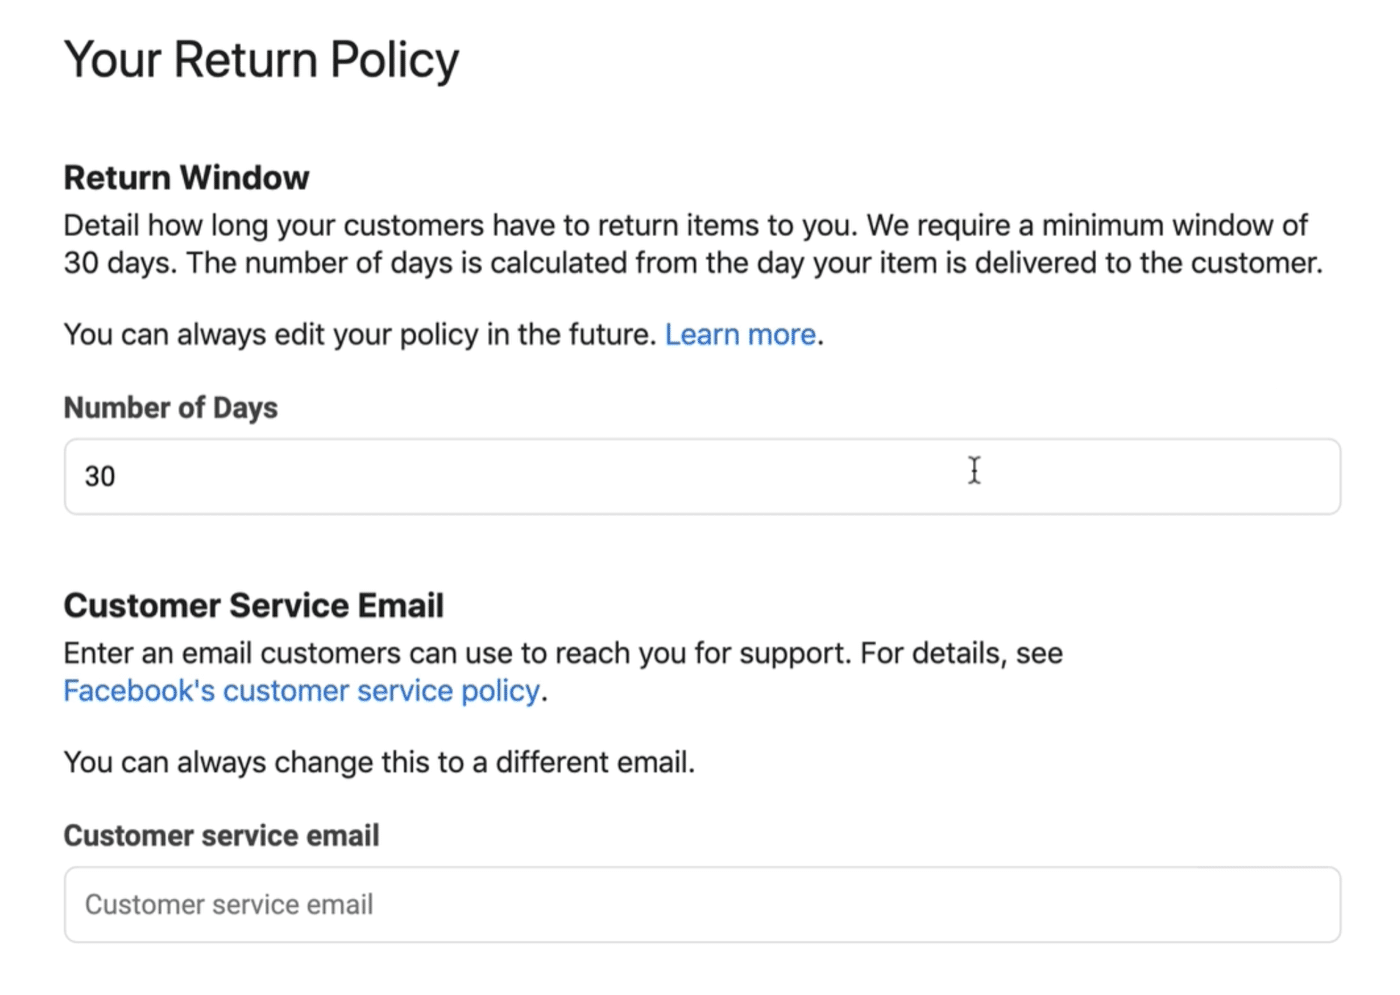 Your Return Policy